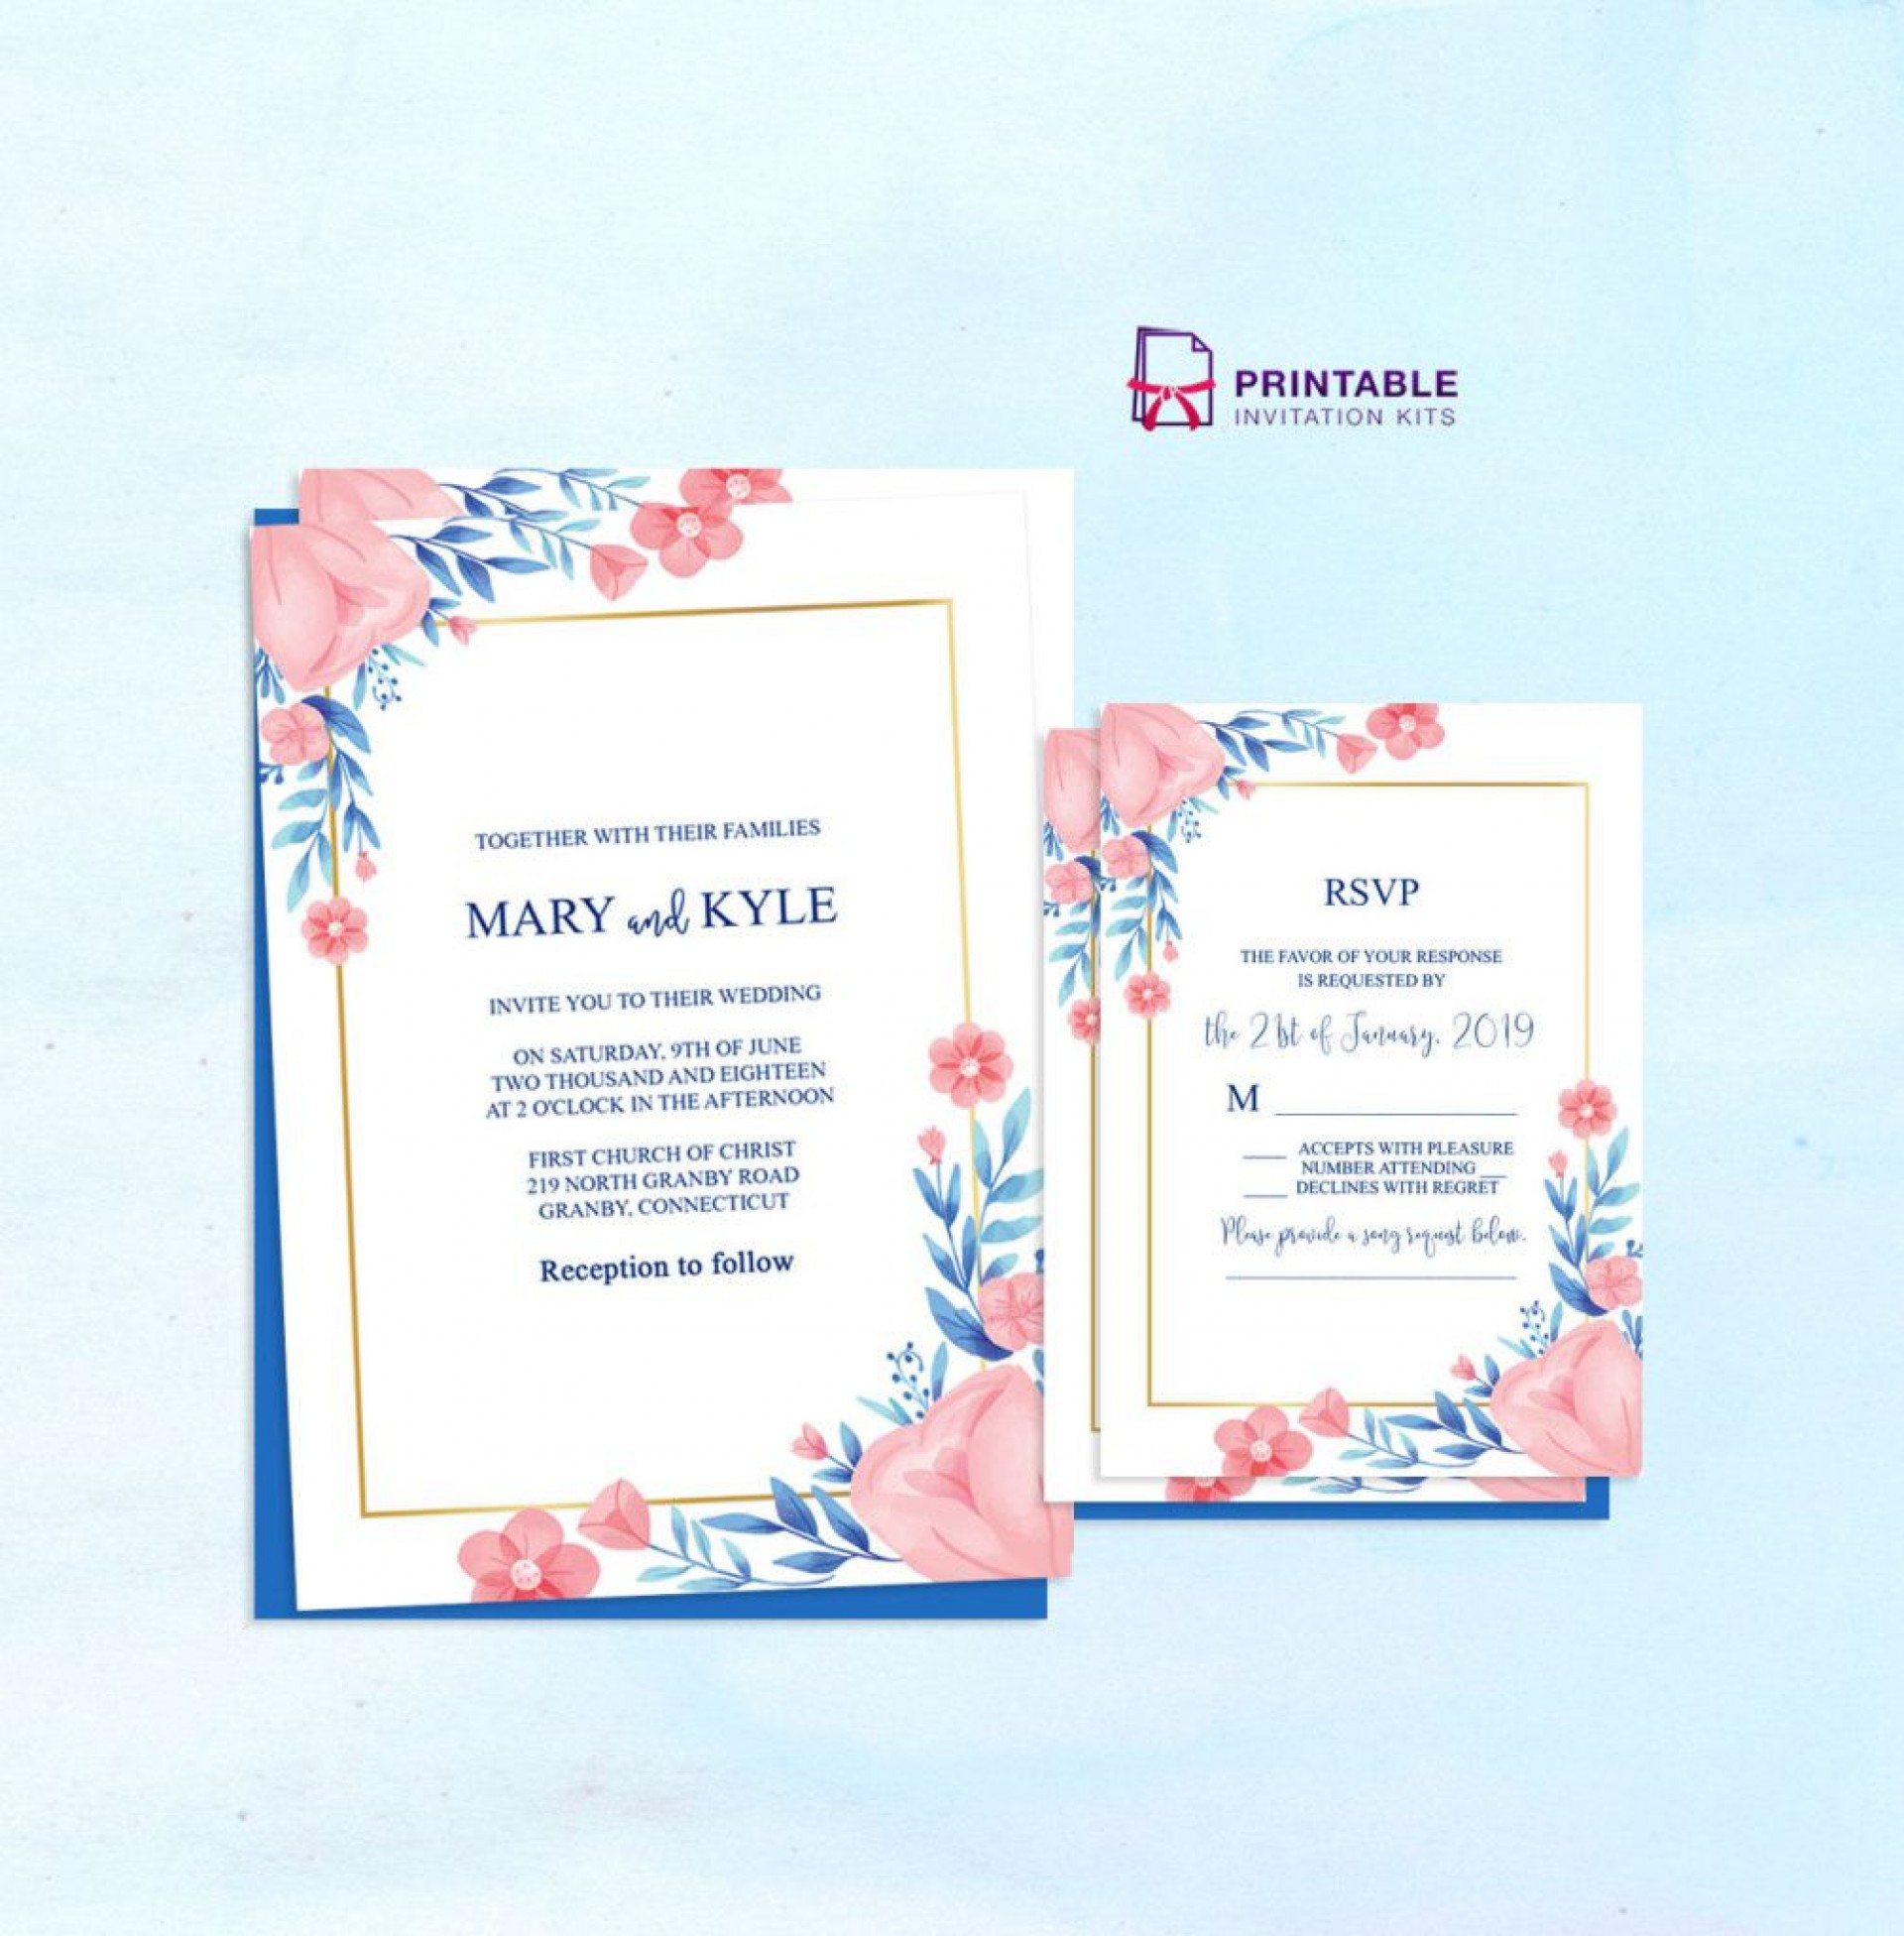 001 Fearsome Sample Wedding Invitation Template Free Download Image  Wording1920